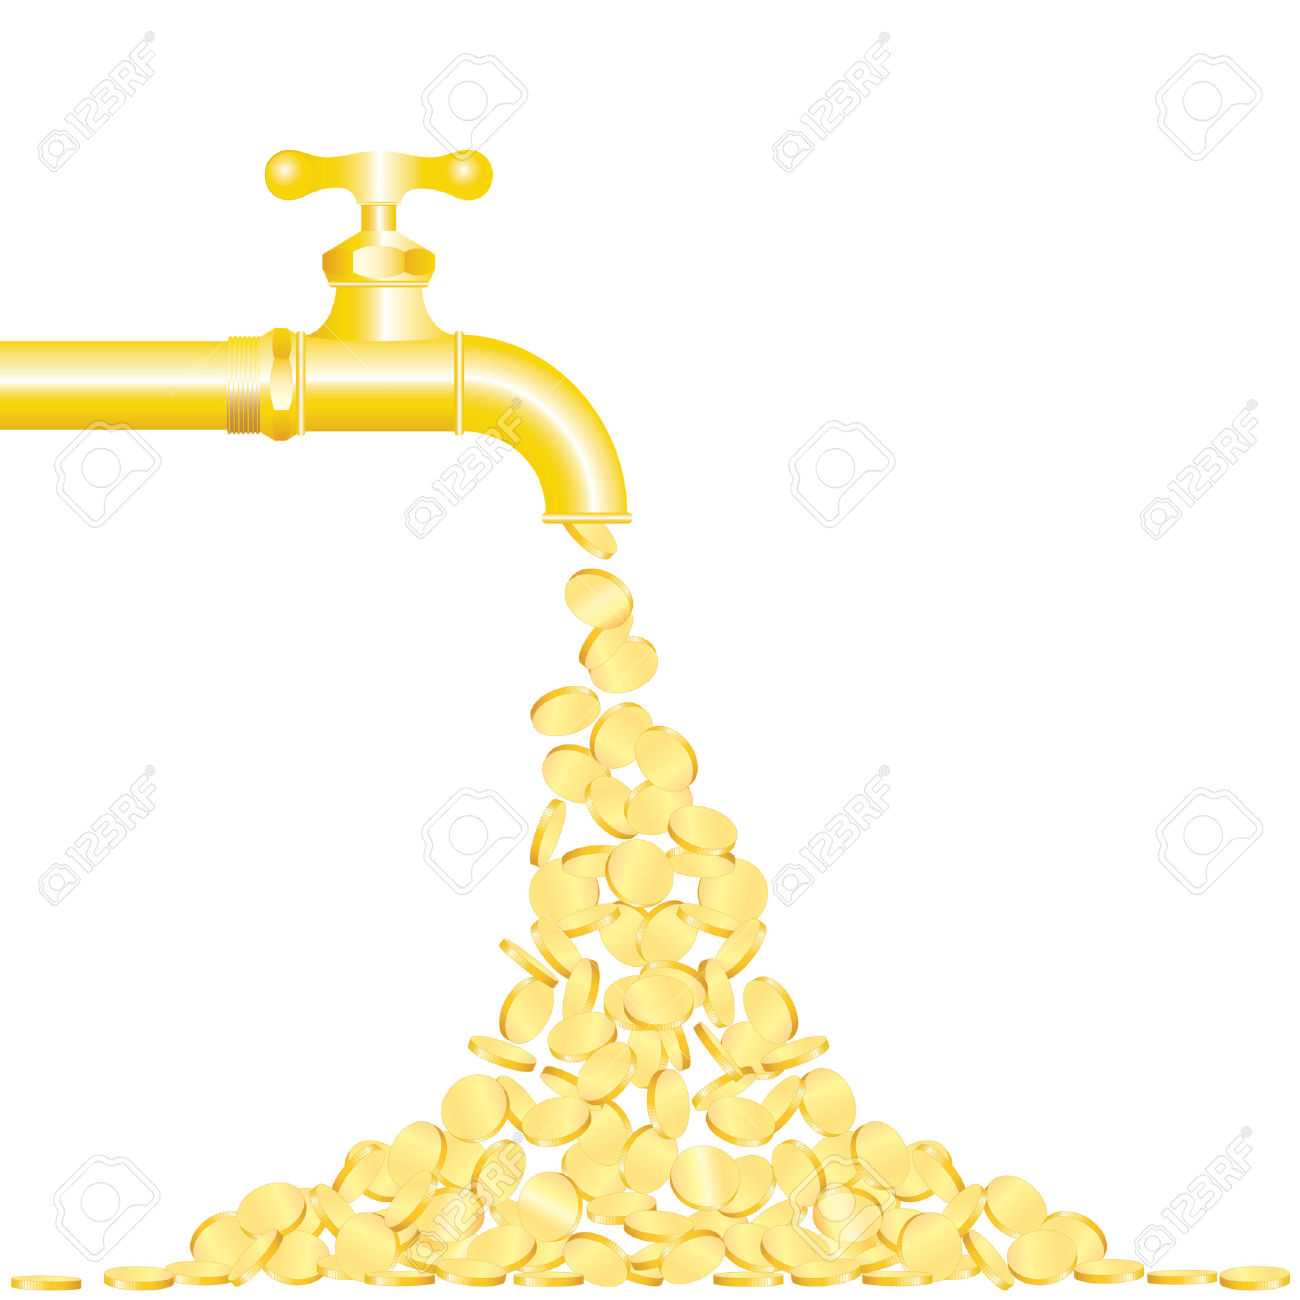 Illustration Of The Golden Coins Falling From Tap Royalty Free.